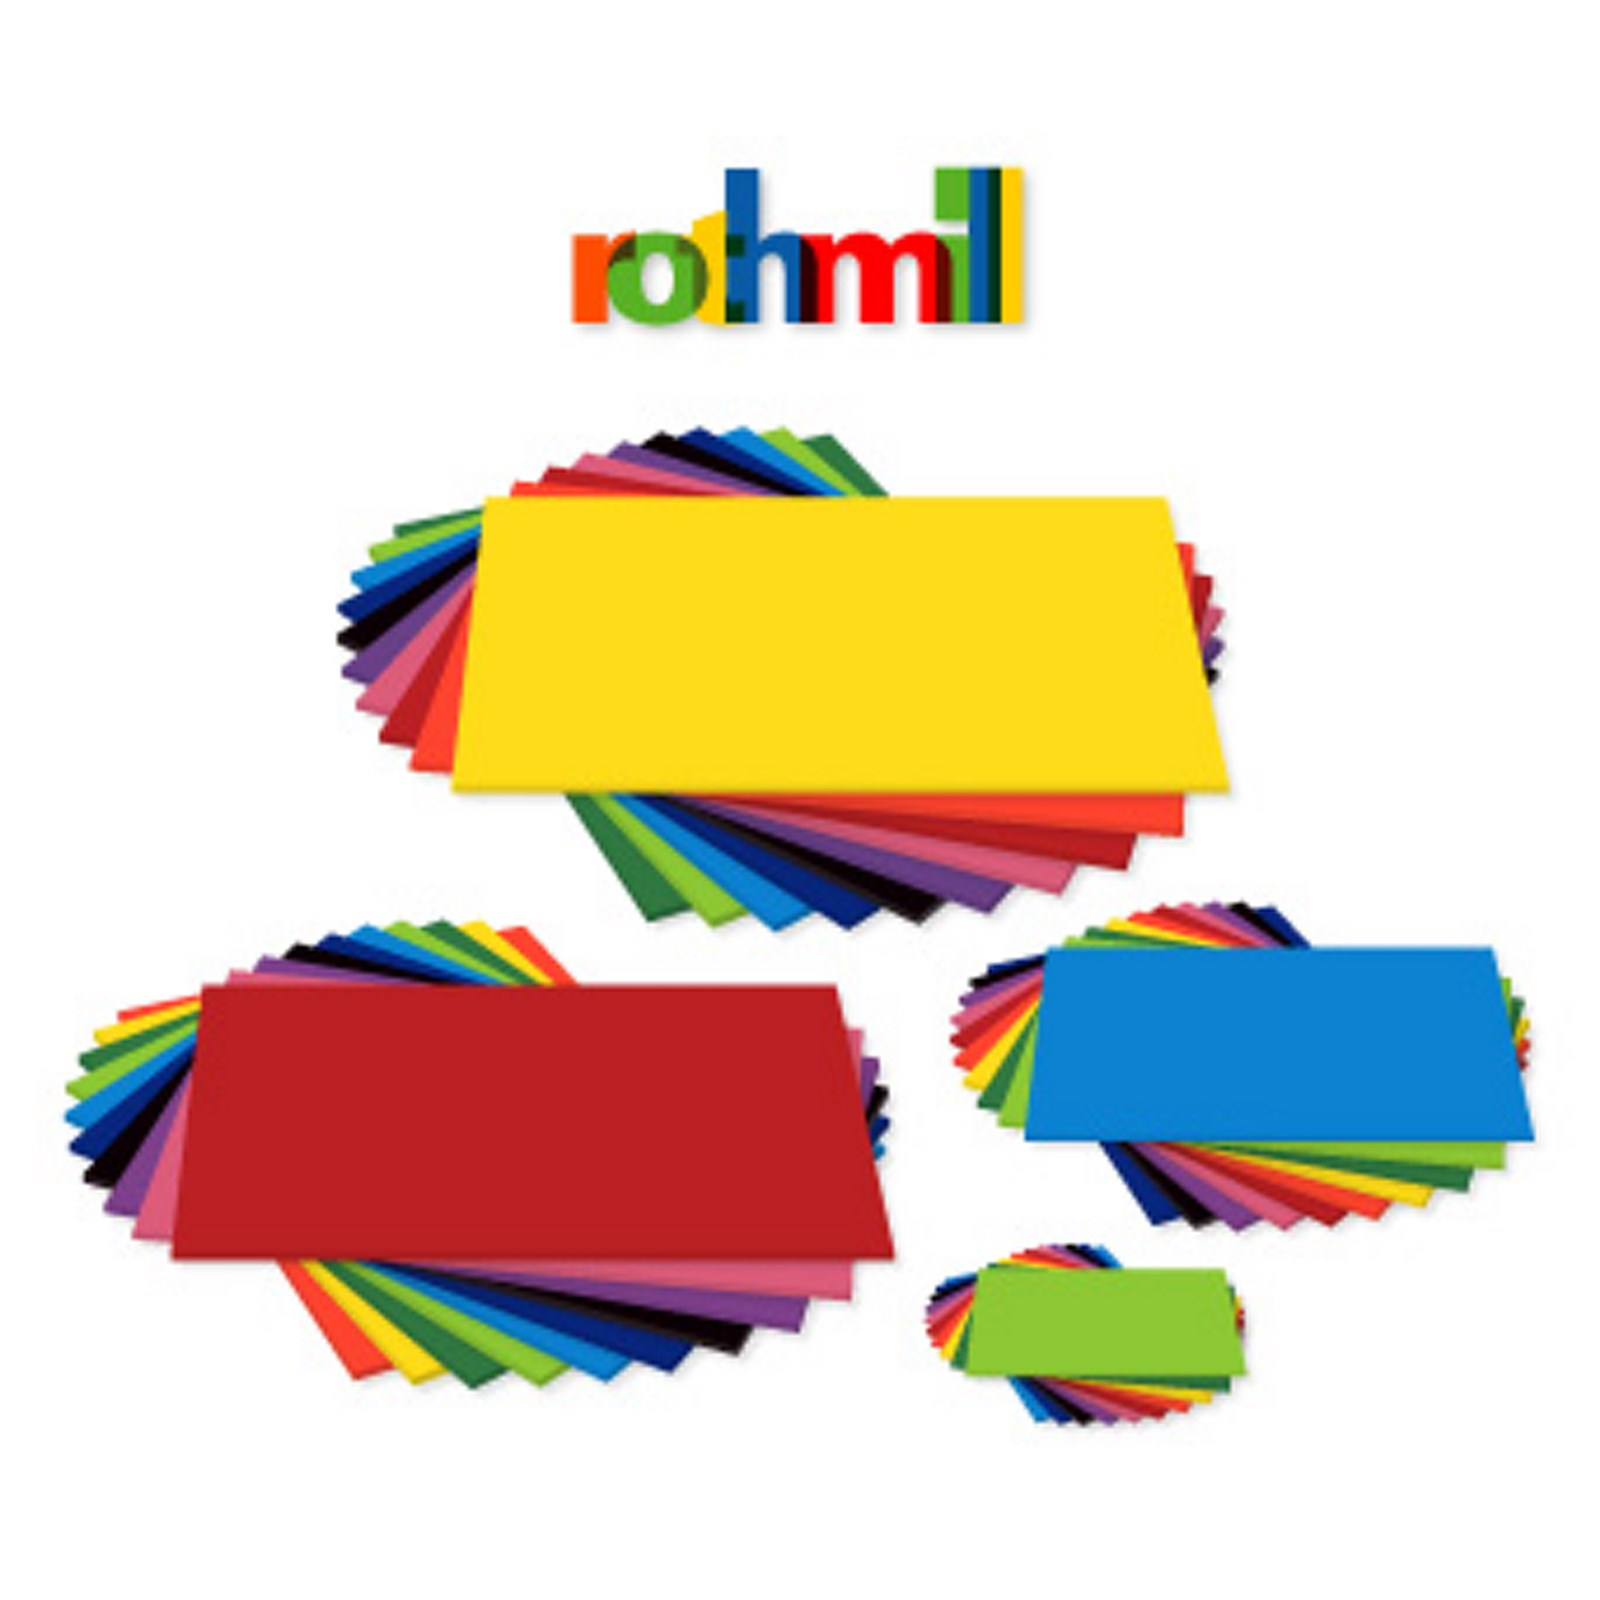 Rothmill Vivid Yellow 280 Microns A4 Pack of 50